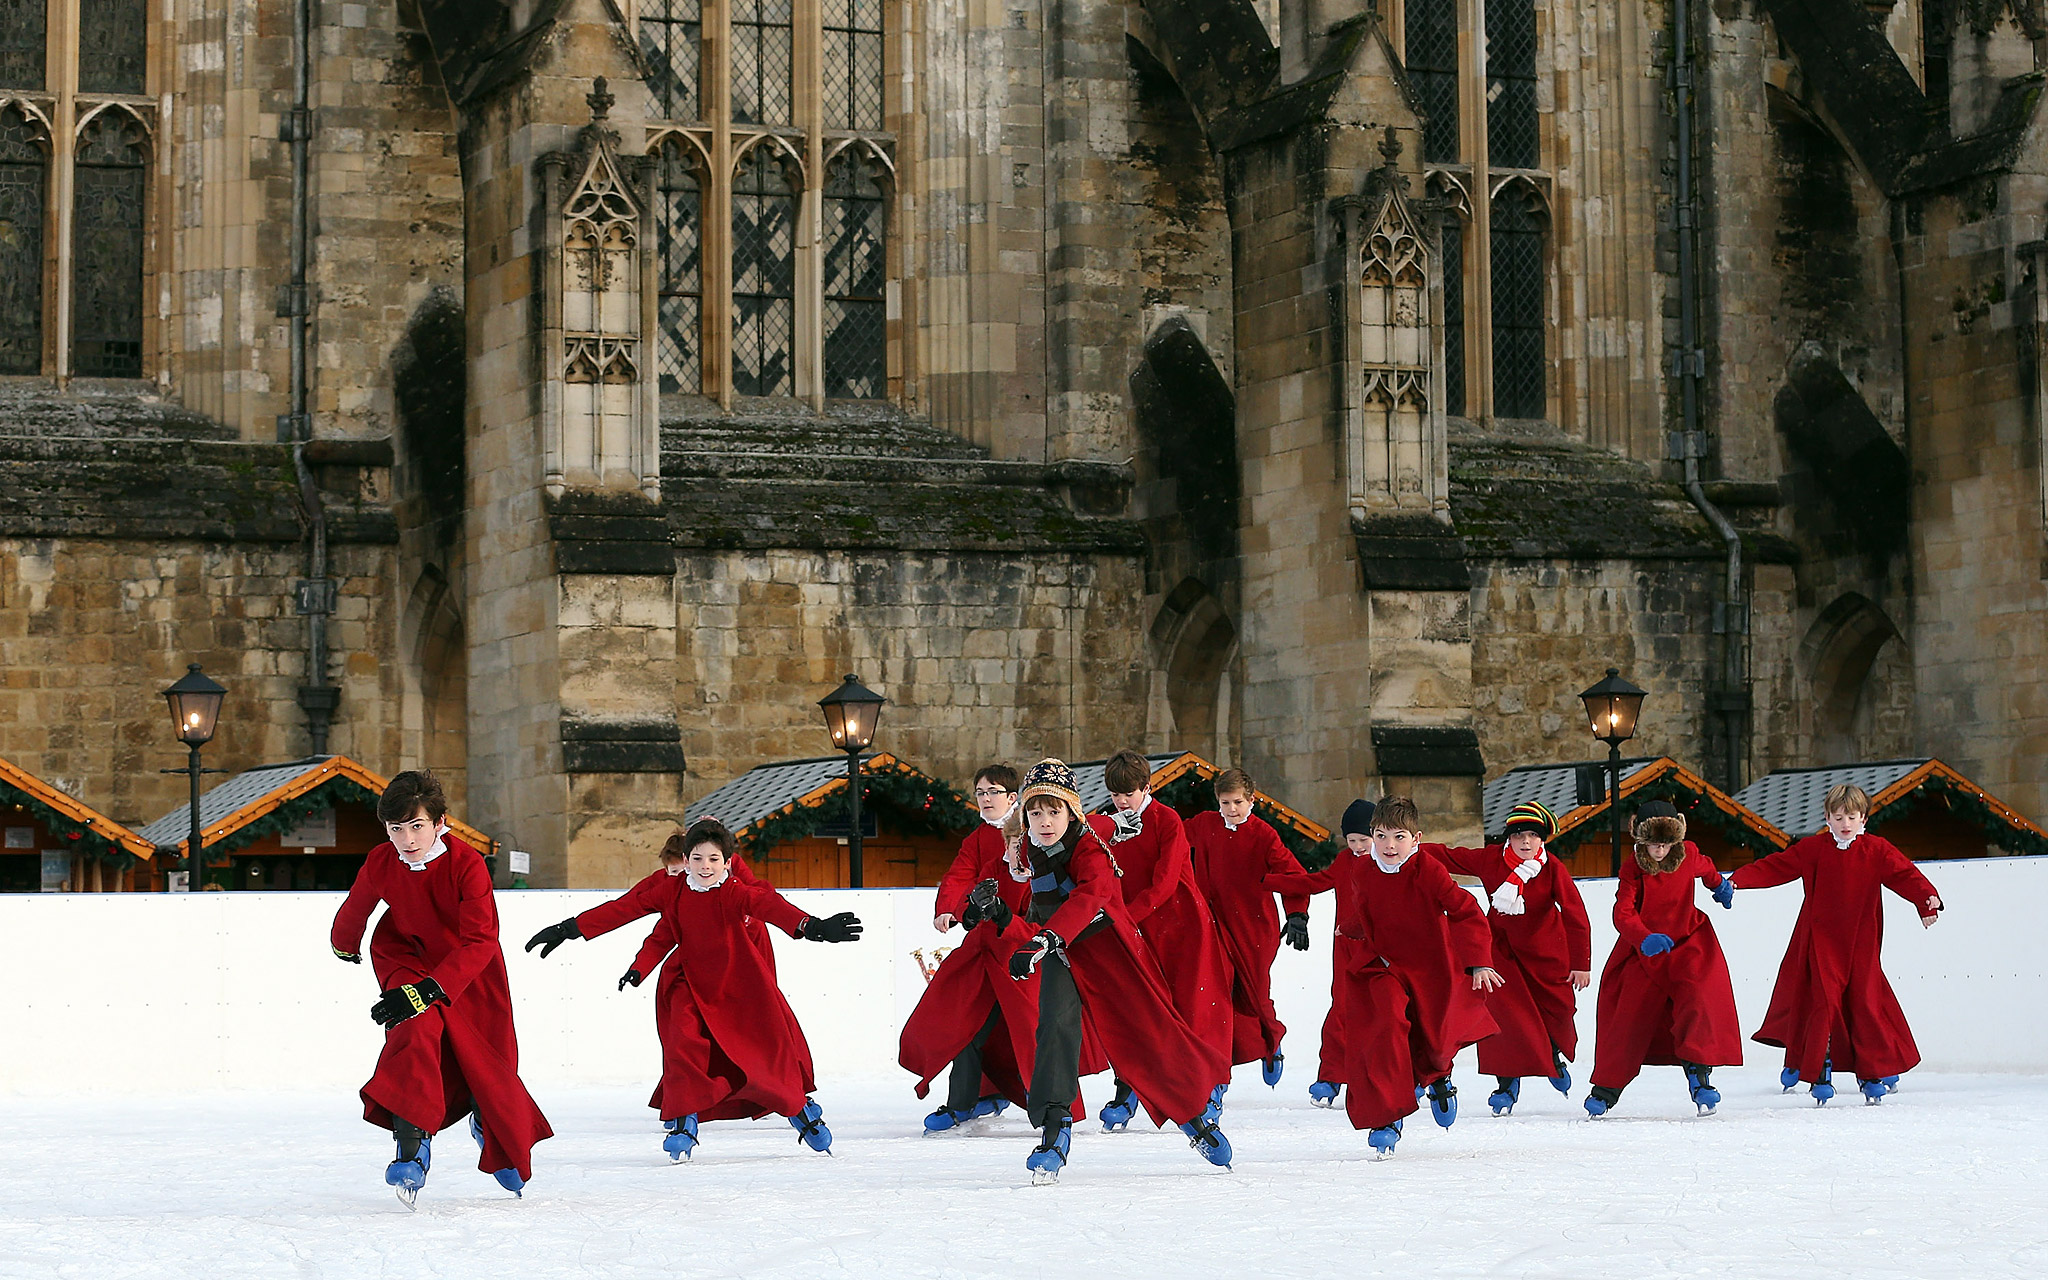 Choristers from Winchester Cathedral